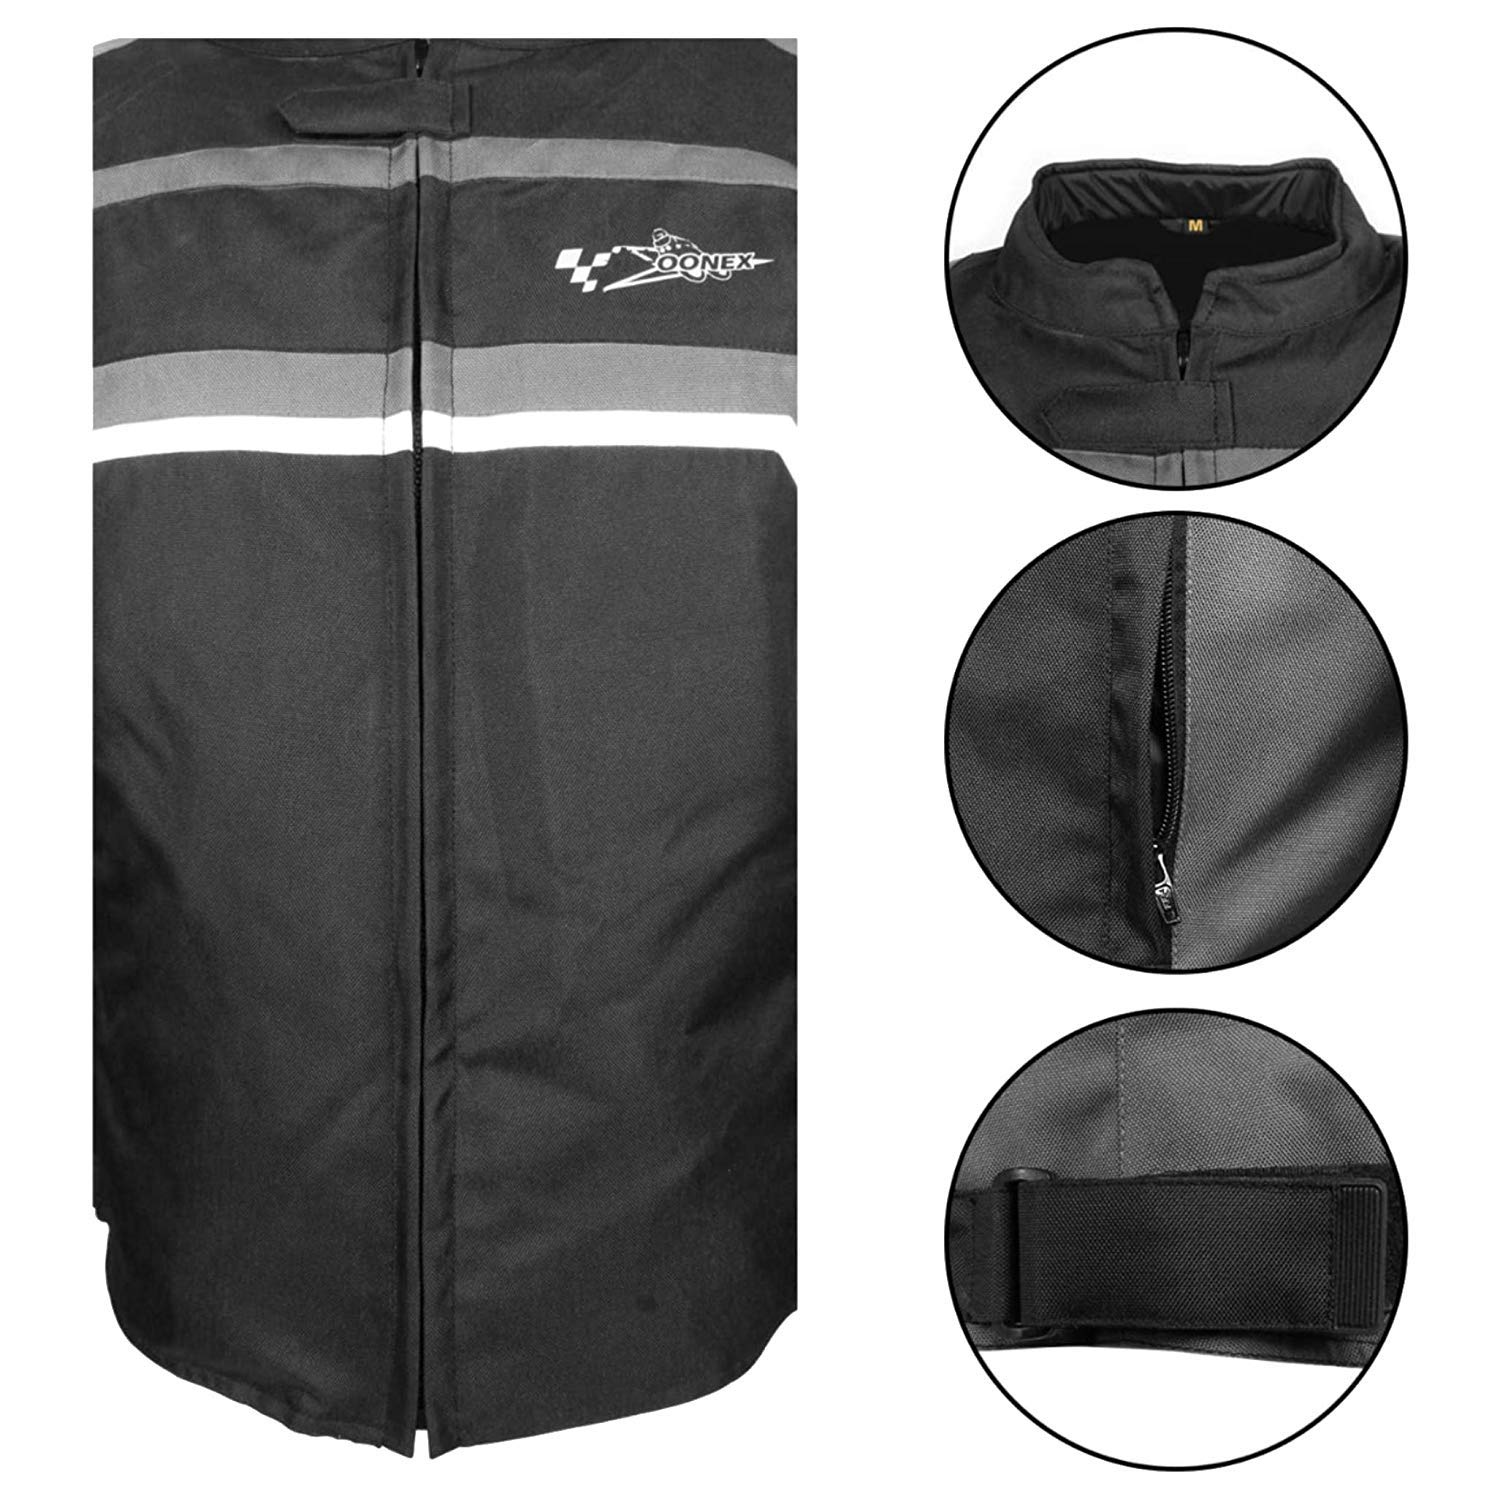 XS, Black//Gray Motorbike Motorcycle Jackets for Mens Biker Sports Accessories Cordura Fabric Summer New Look Black Jacket with CE Removable Armour with 100/% Best Fitting for Motorbike Riders